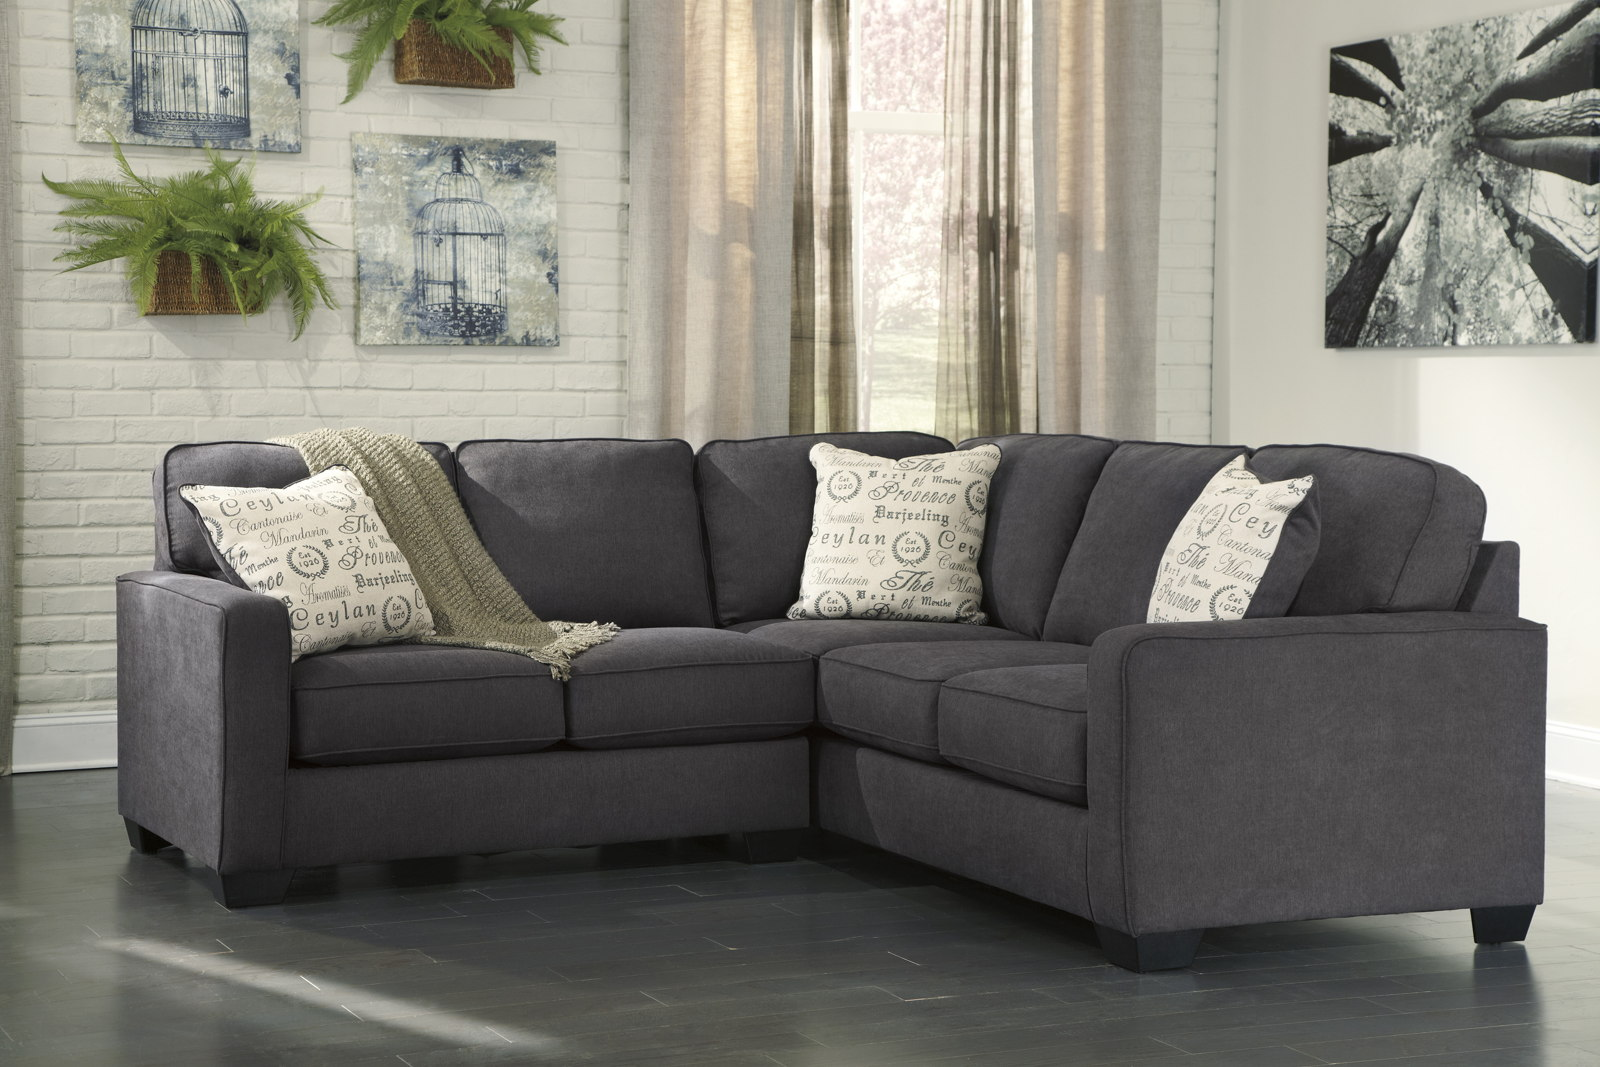 Alenya 2 Piece RAF Sofa Sectional In Charcoal